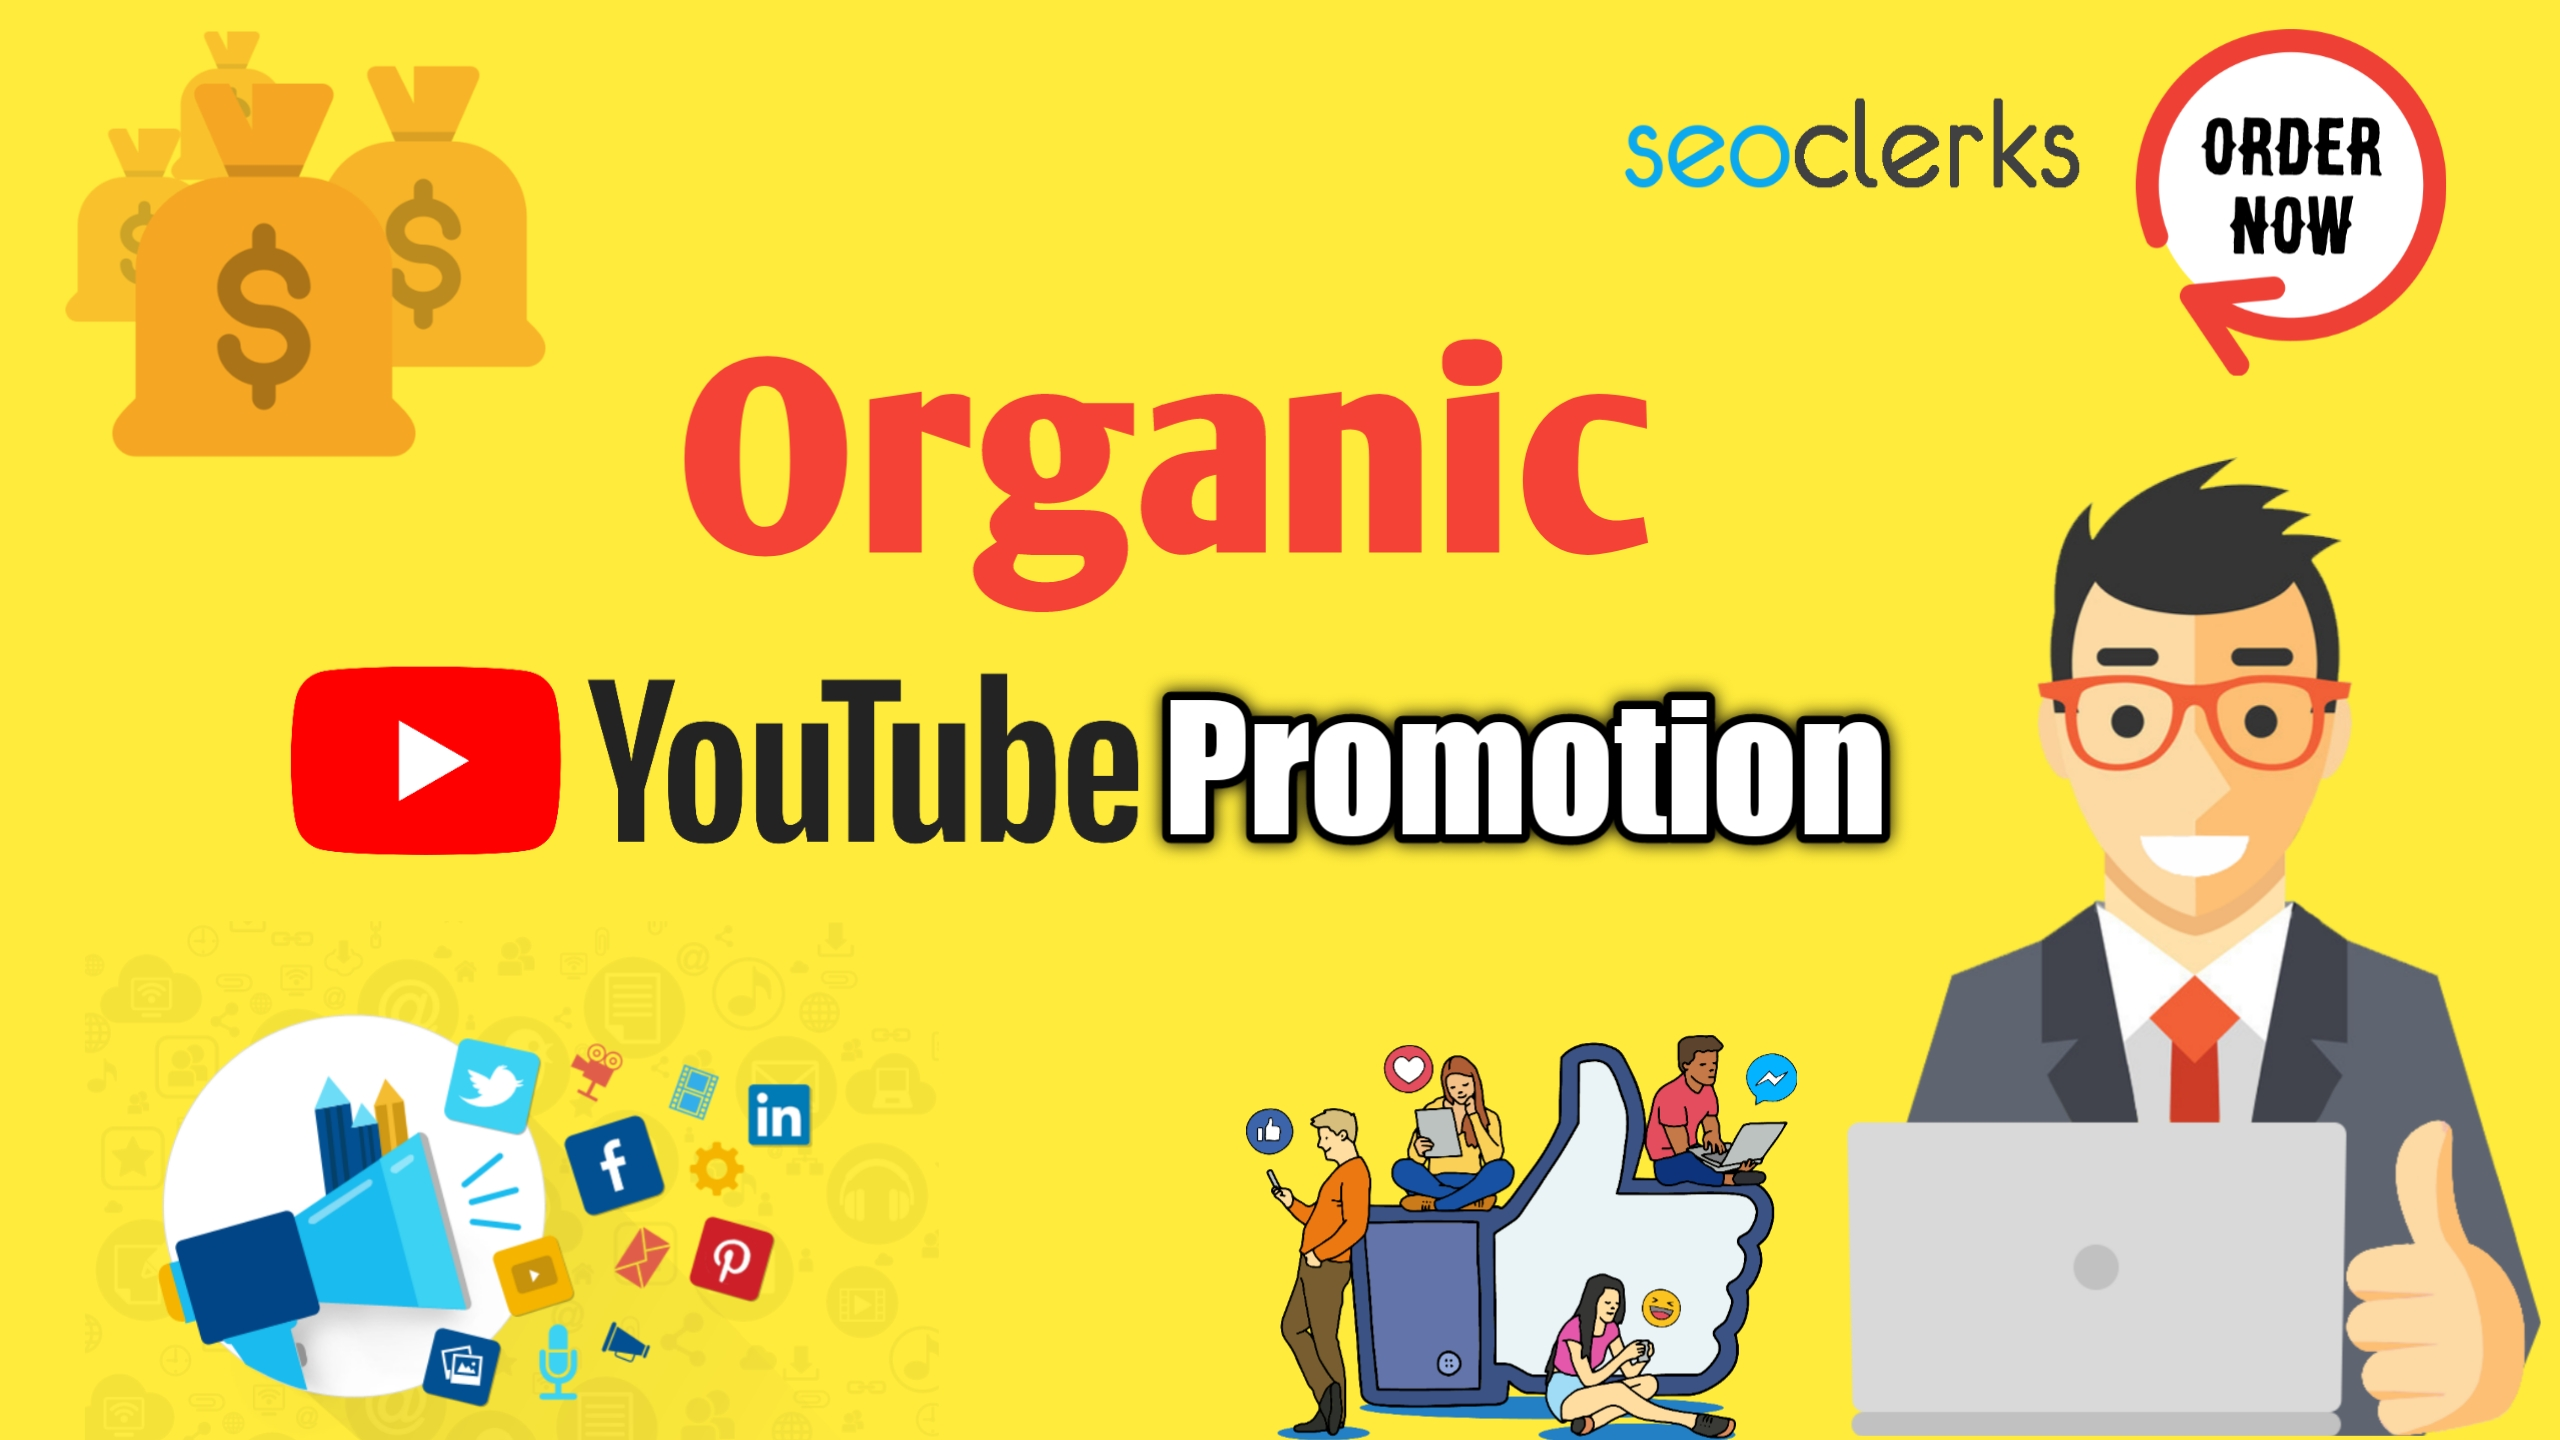 i will do organic youtube video promotion to go viral